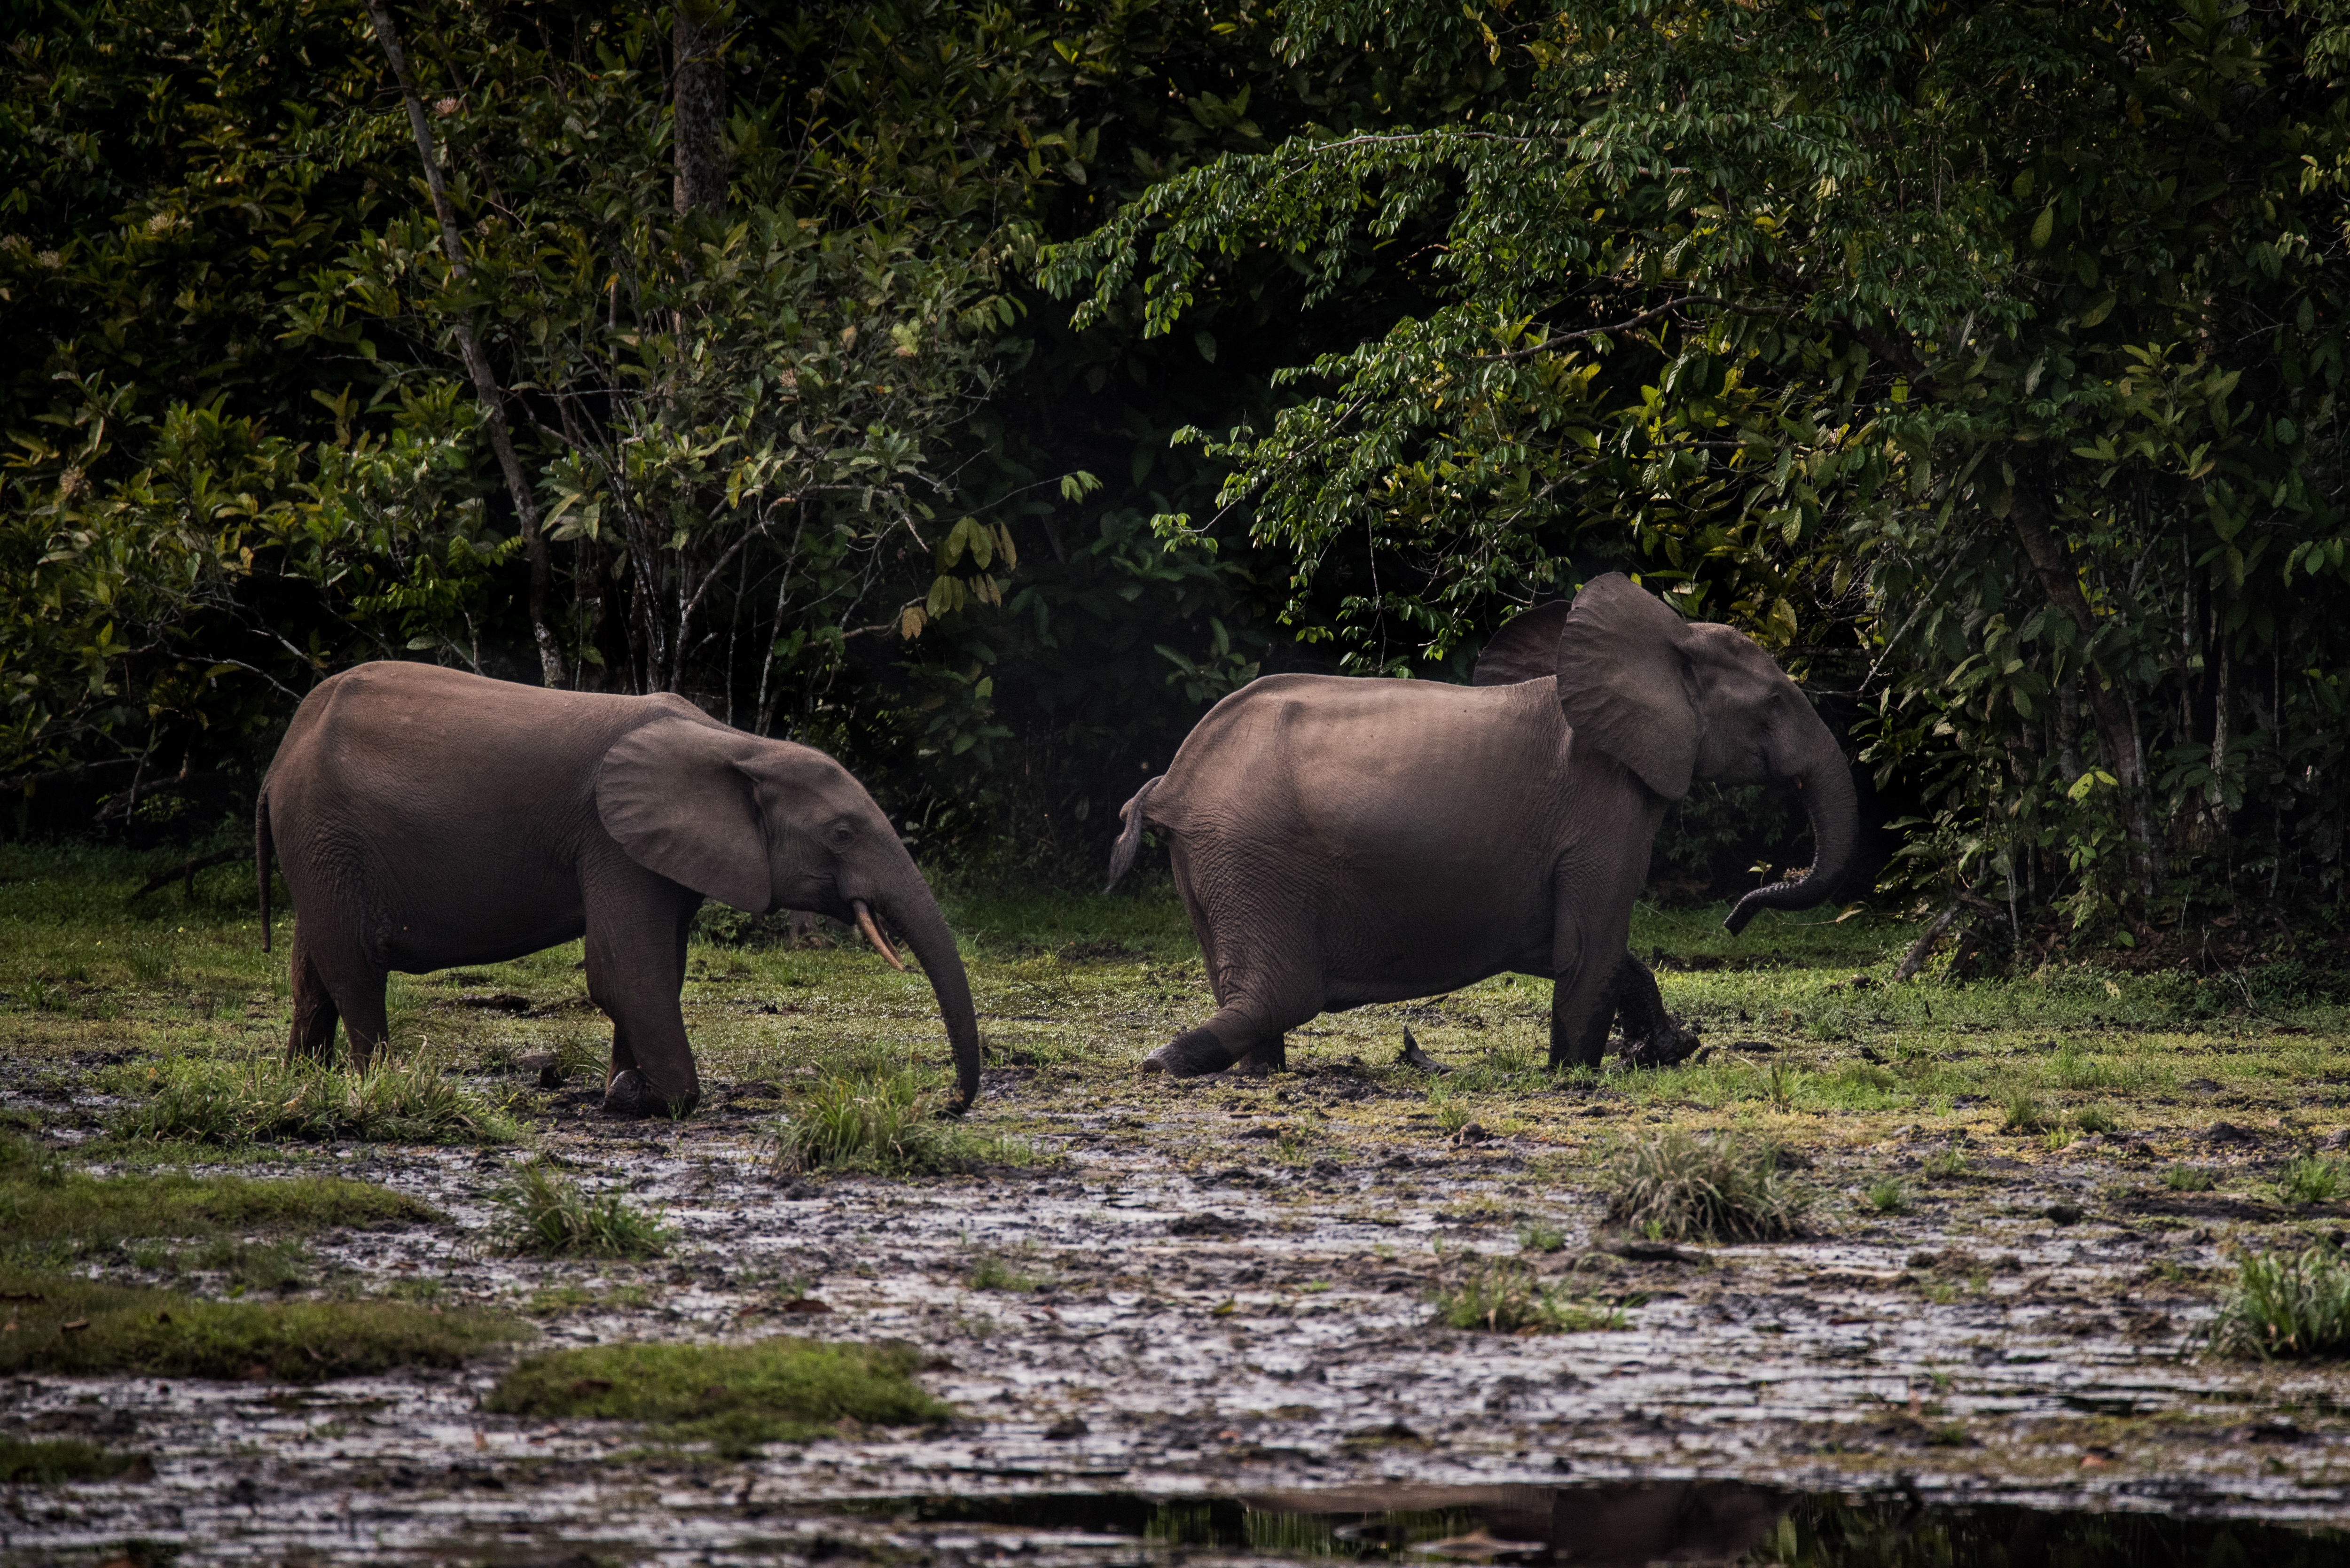 Forest elephants in Odzala-Kokoua National Park, Rep. of Congo © Frank af Petersens_Save the Elephants